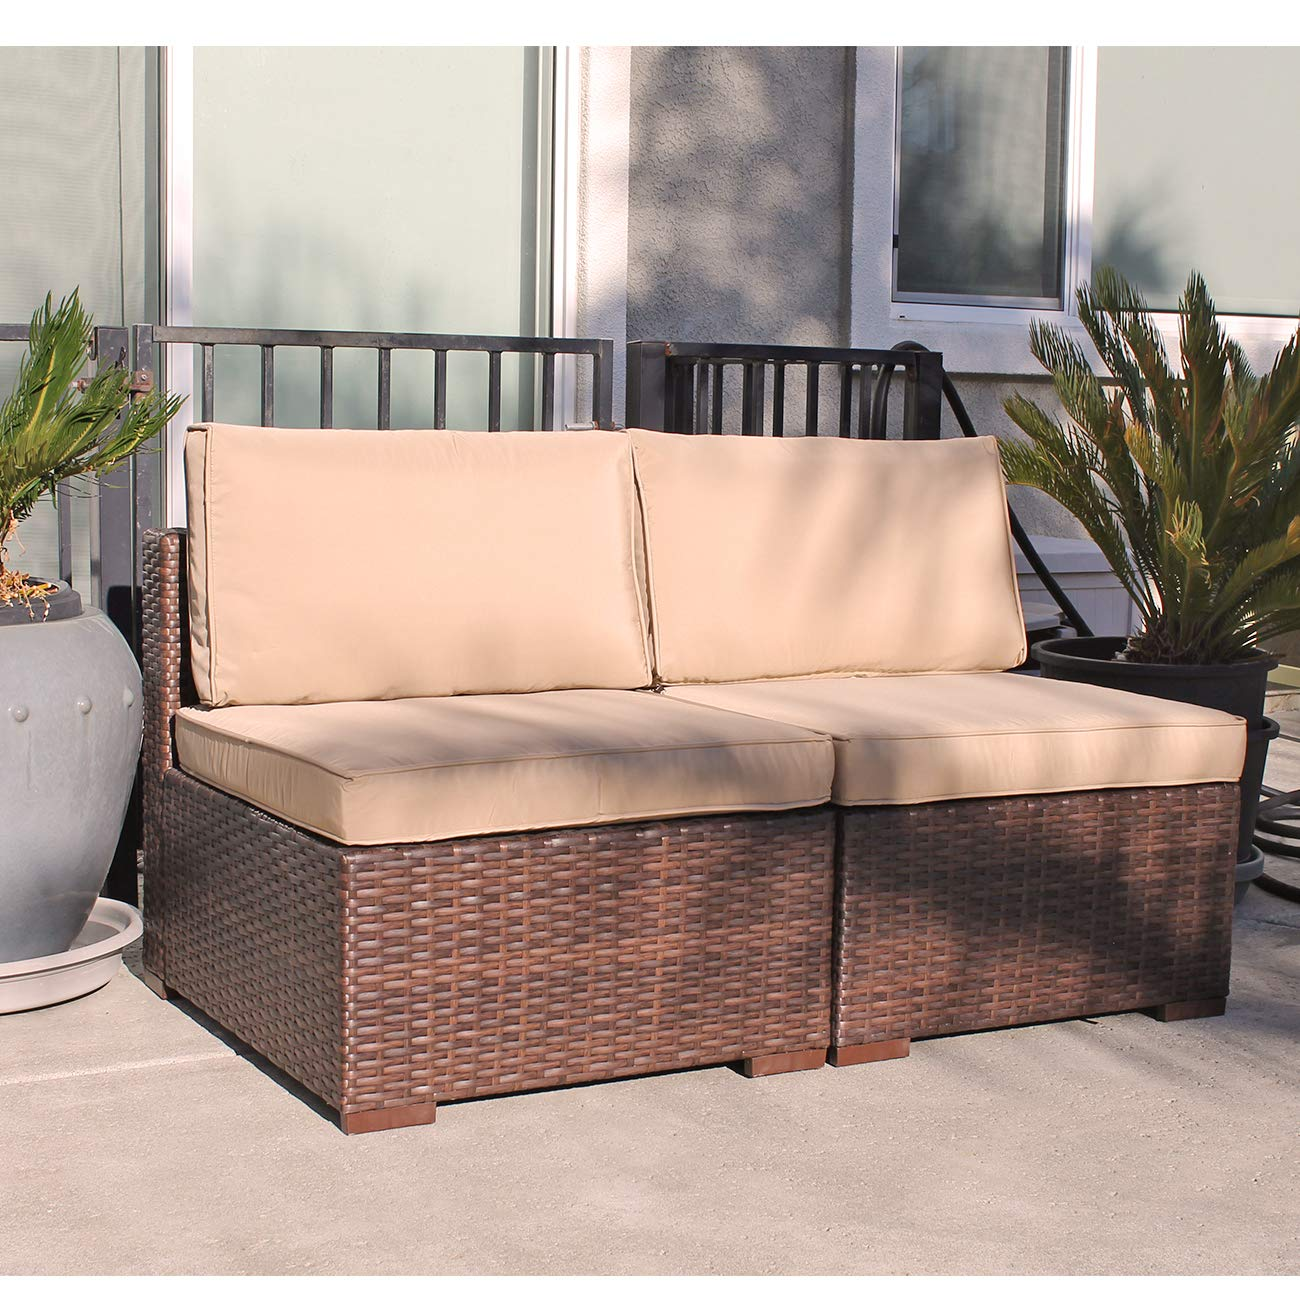 Patiorama Patio Loveseat Wicker Armless Chairs, All Weather Brown PE Wicker Sofa Chair,Additional Seats for Sectional Sofa, Beige Cushions,Steel Frame,2 Piece